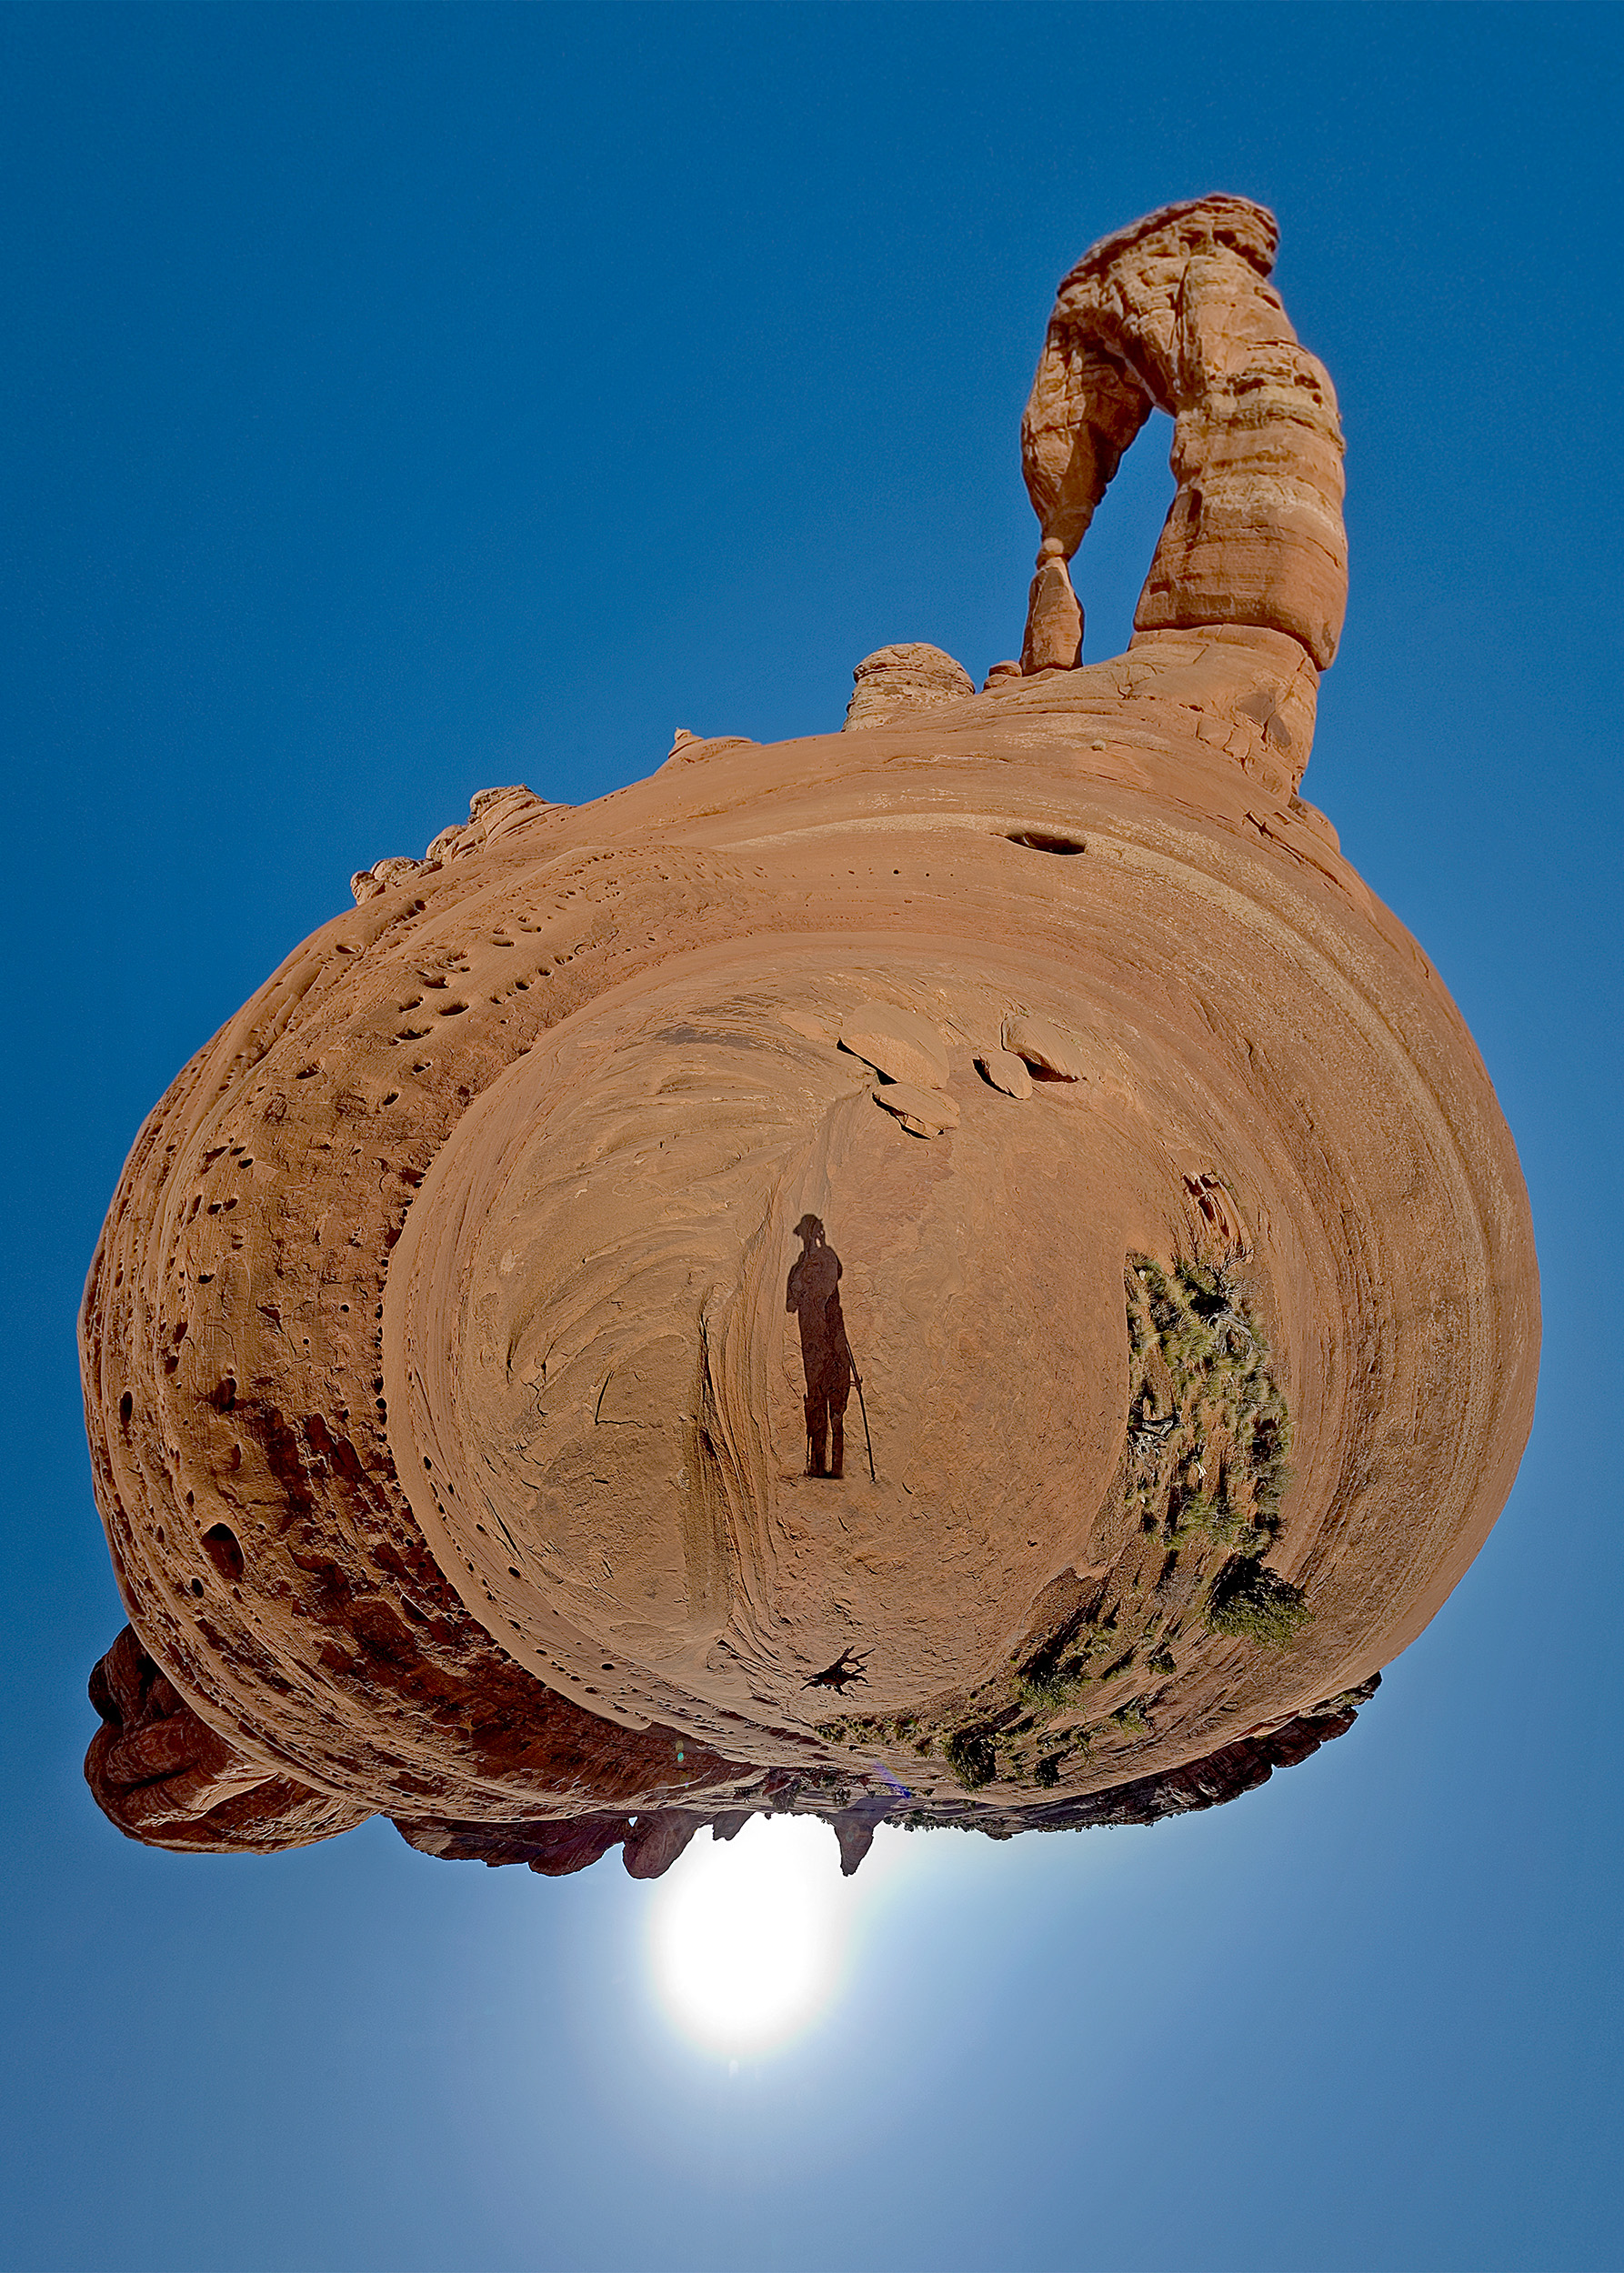 """Self portrait """"planet"""" panorama at Delicate Arch, Arches National Park. Dan Bailey, 2010"""